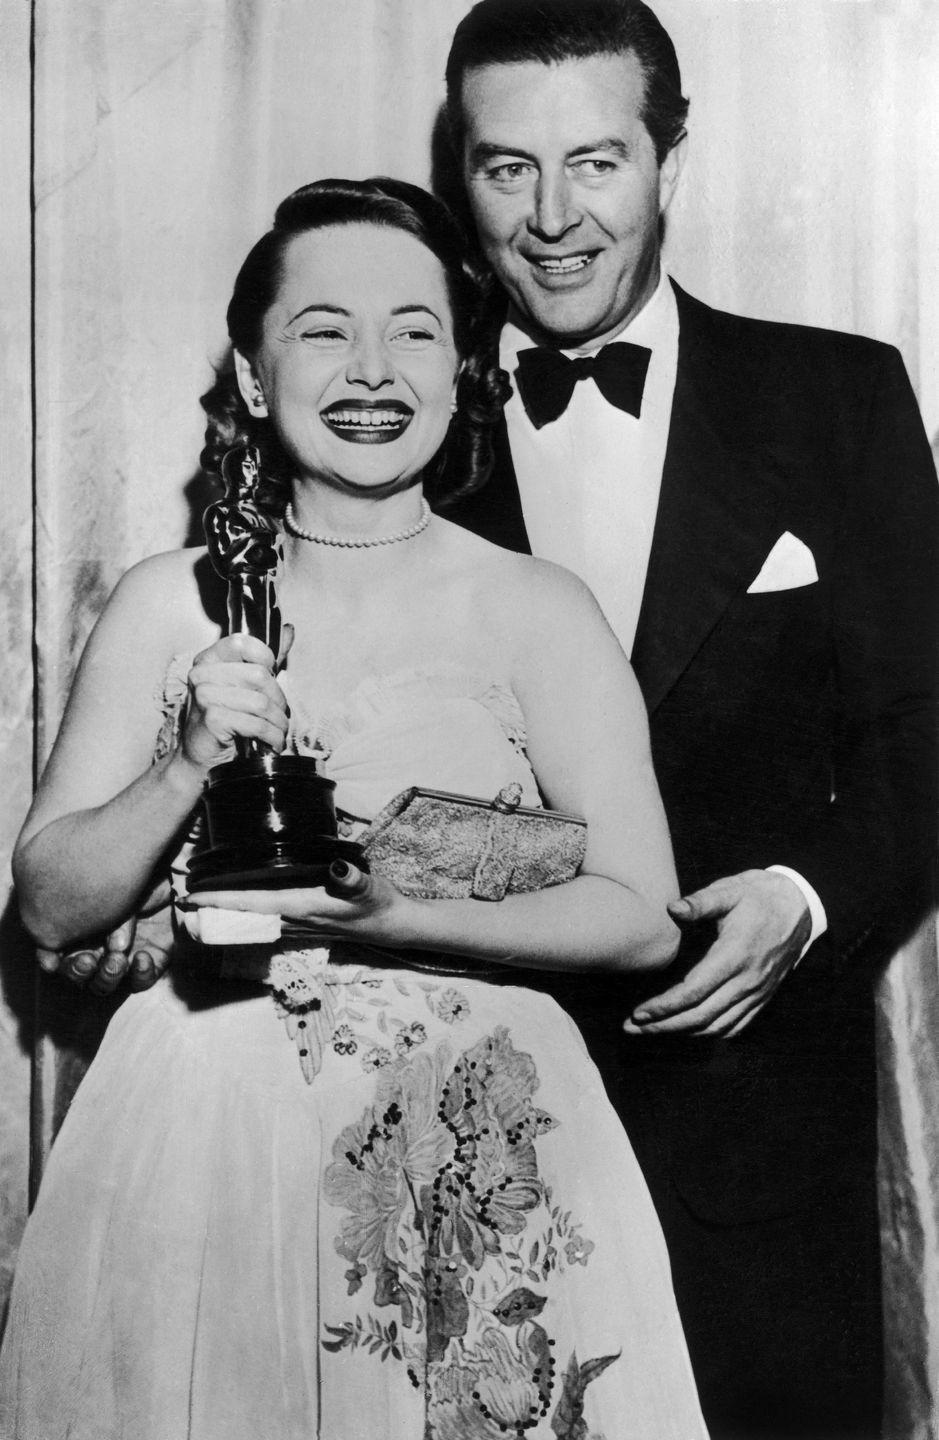 <p>Olivia de Havilland just moments after receiving the Best Actress Oscar from actor Ray Milland in 1947.</p>